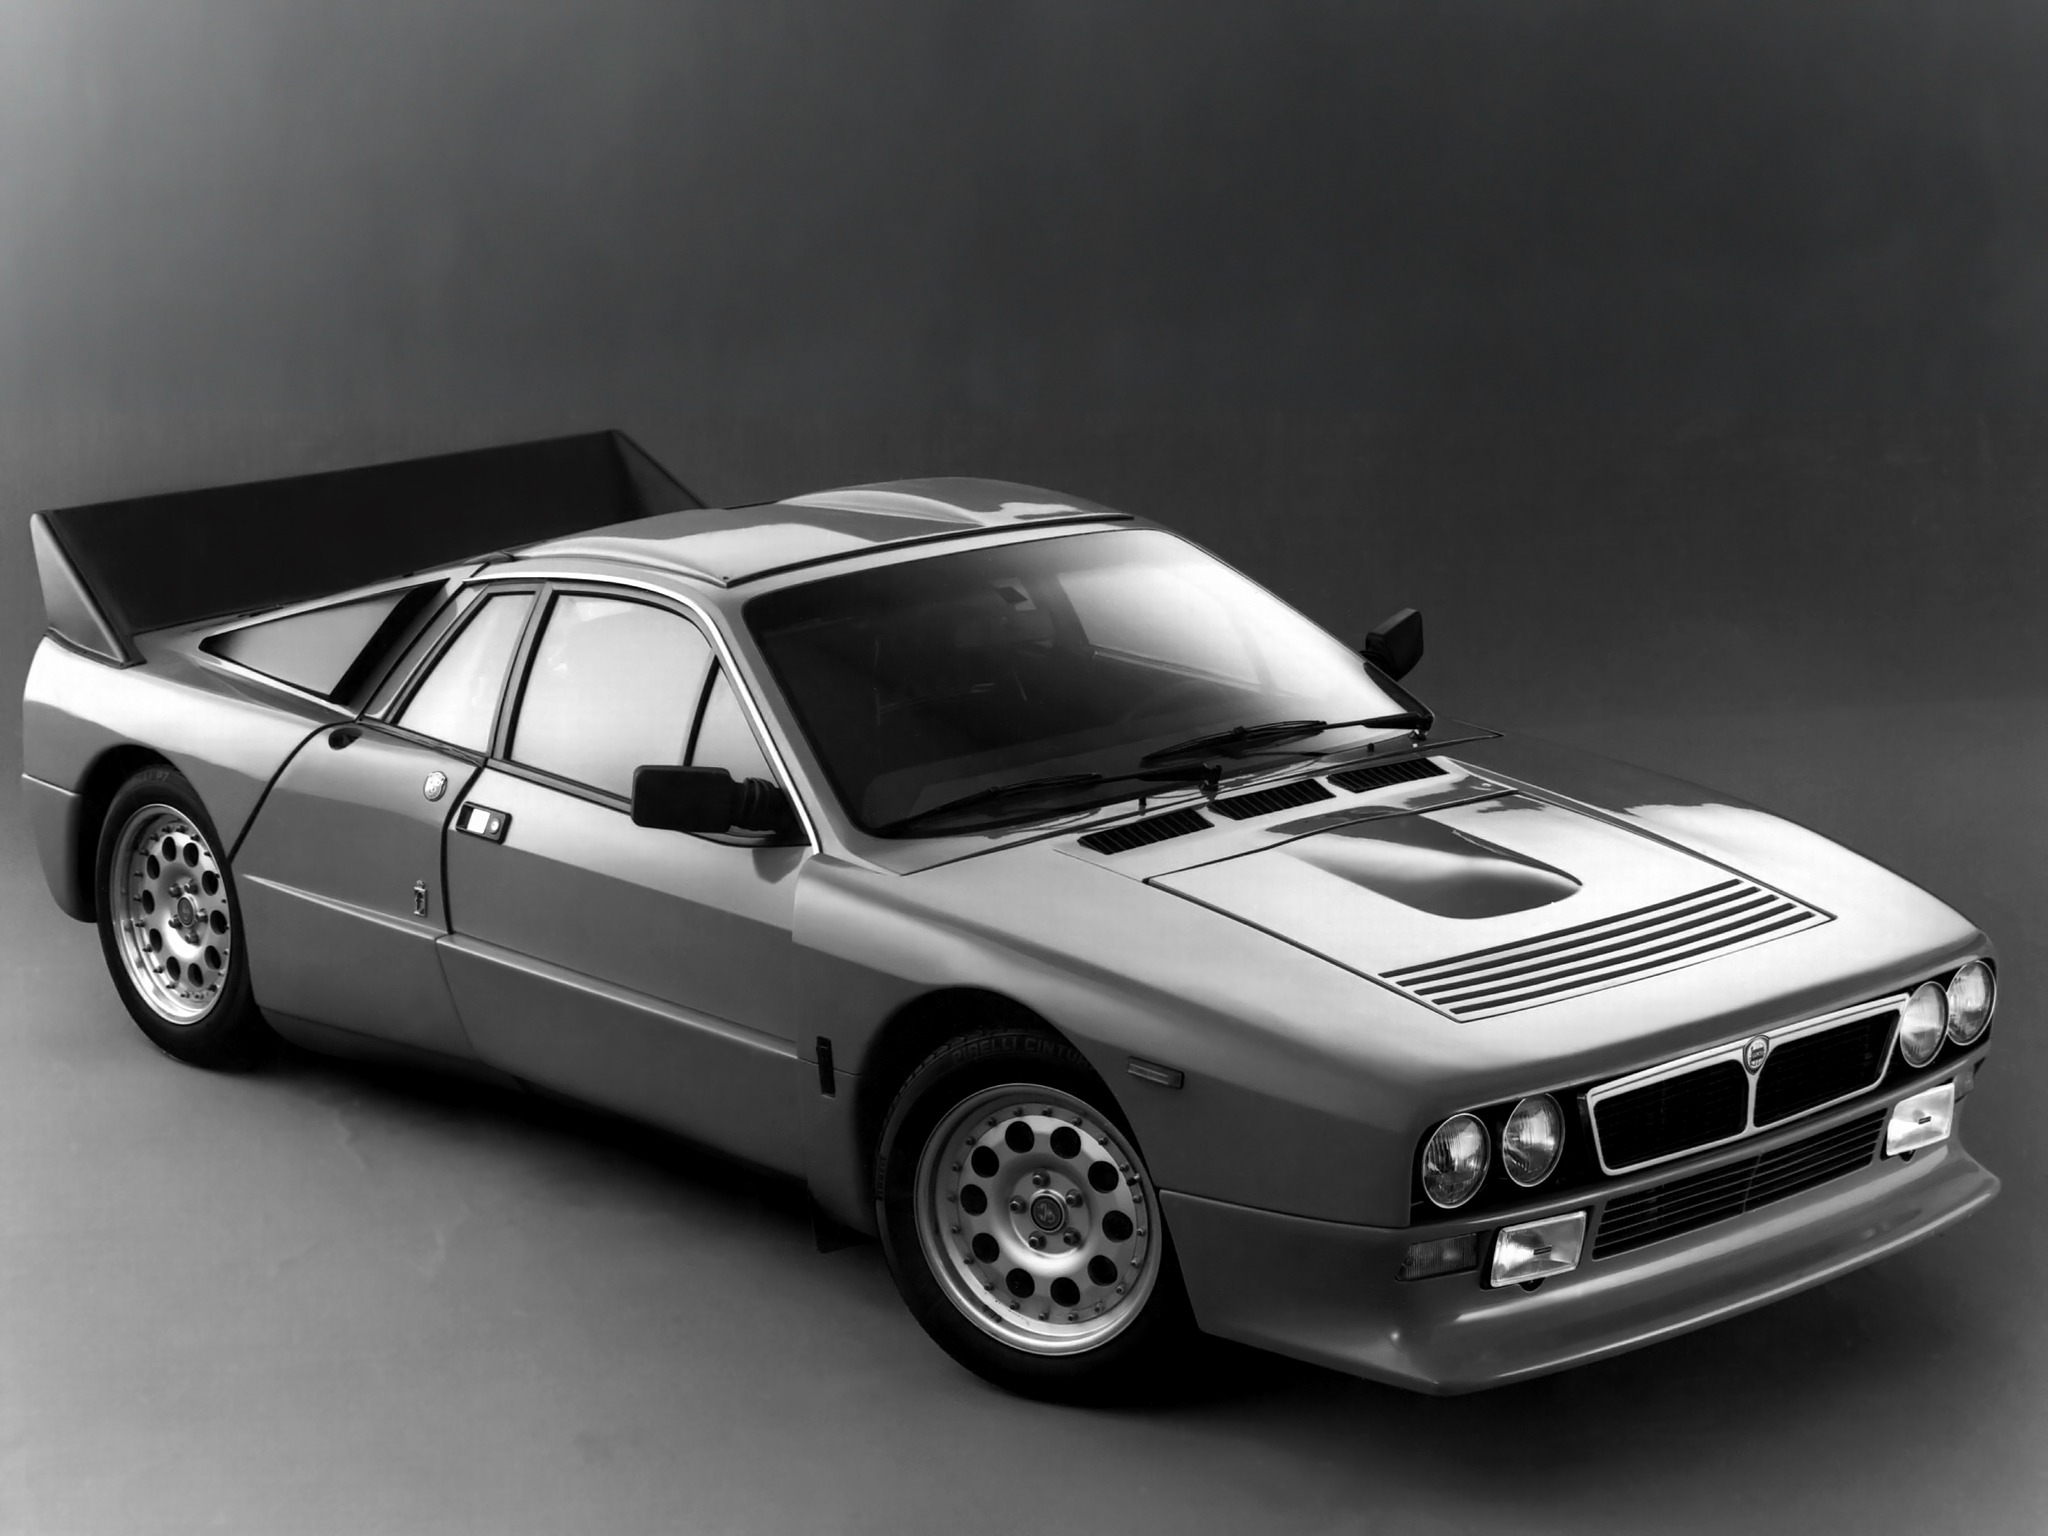 http://oldconceptcars.com/wp-content/uploads/lancia_rally_037_stradale_concept_2.jpg